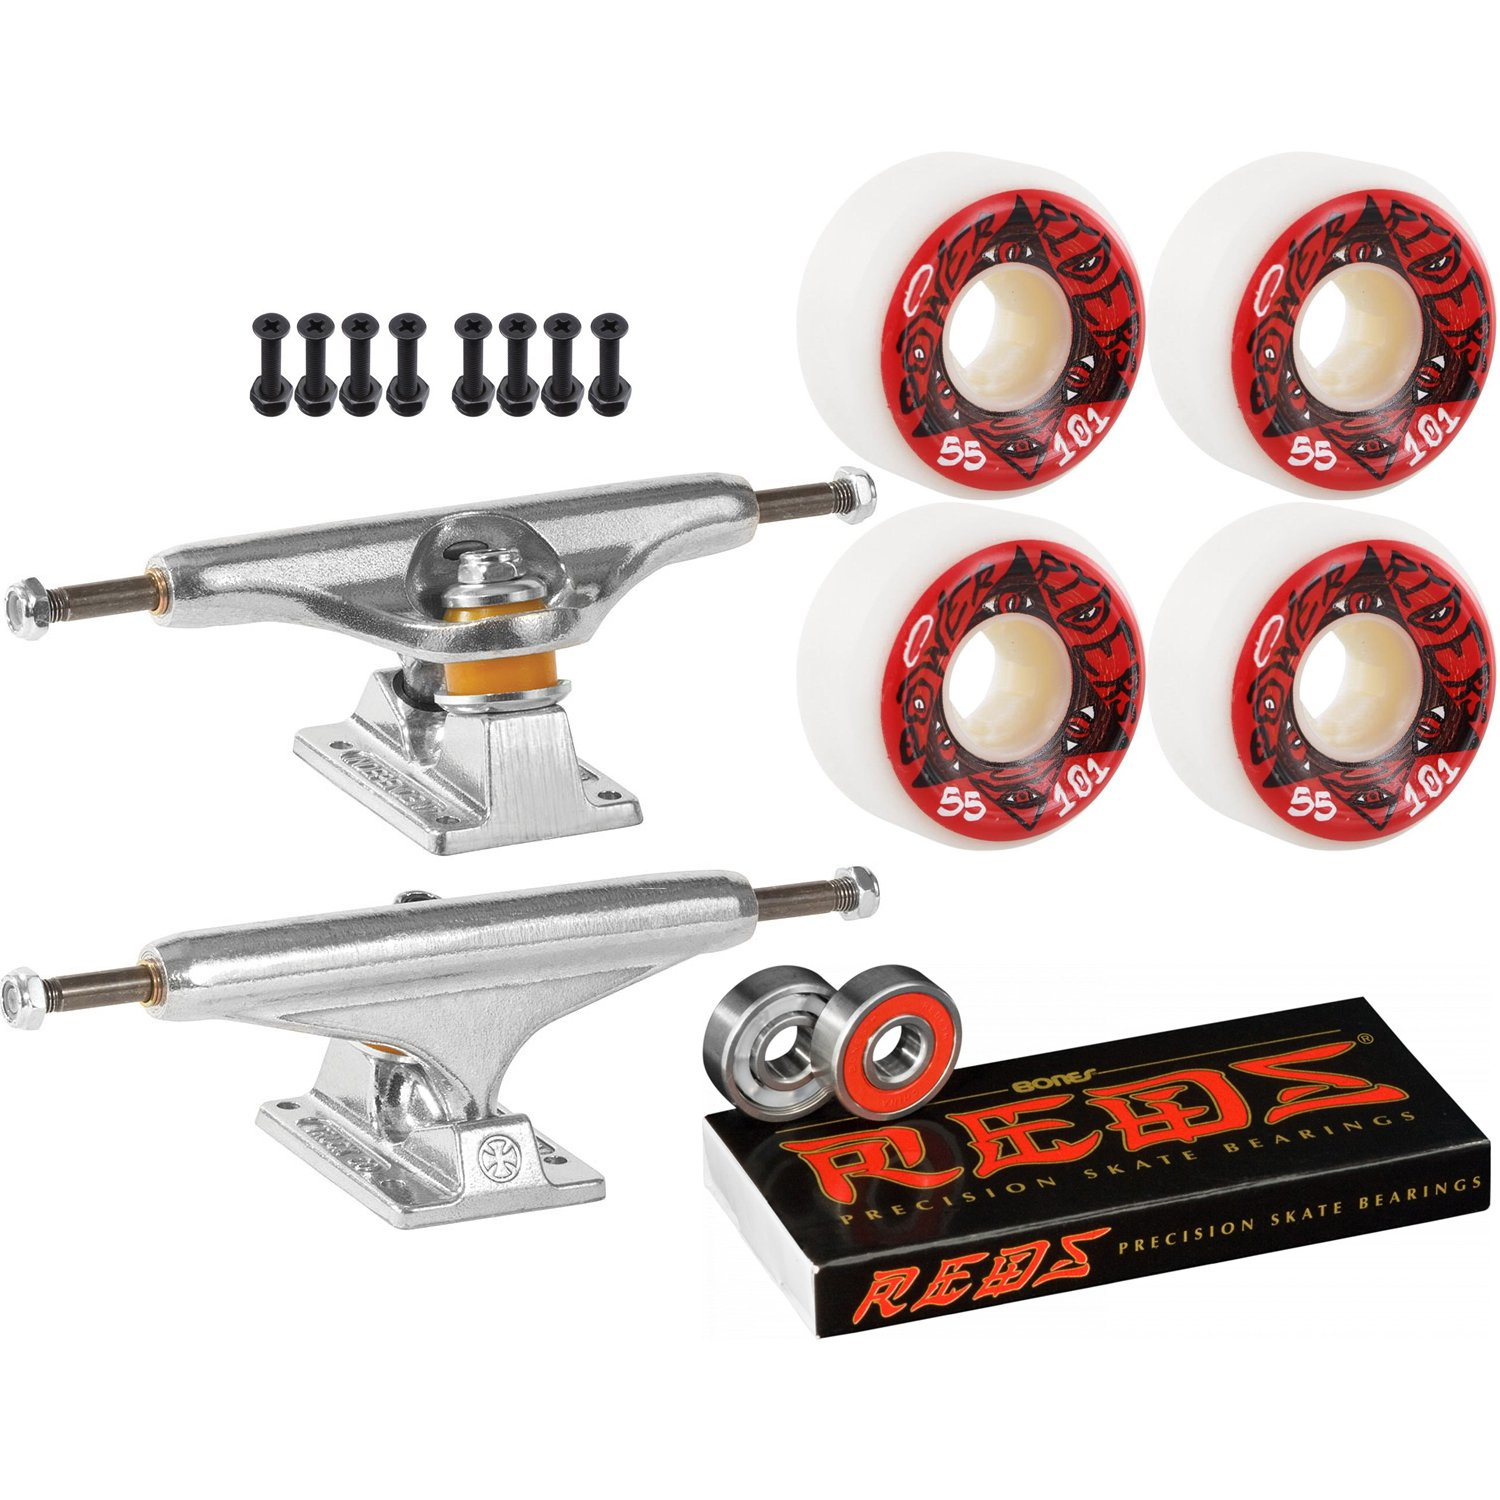 Independentスケートボードキット149 Trucks OJ III電源Riders 55 mm 101ホイールReds   B07CJVRWX9